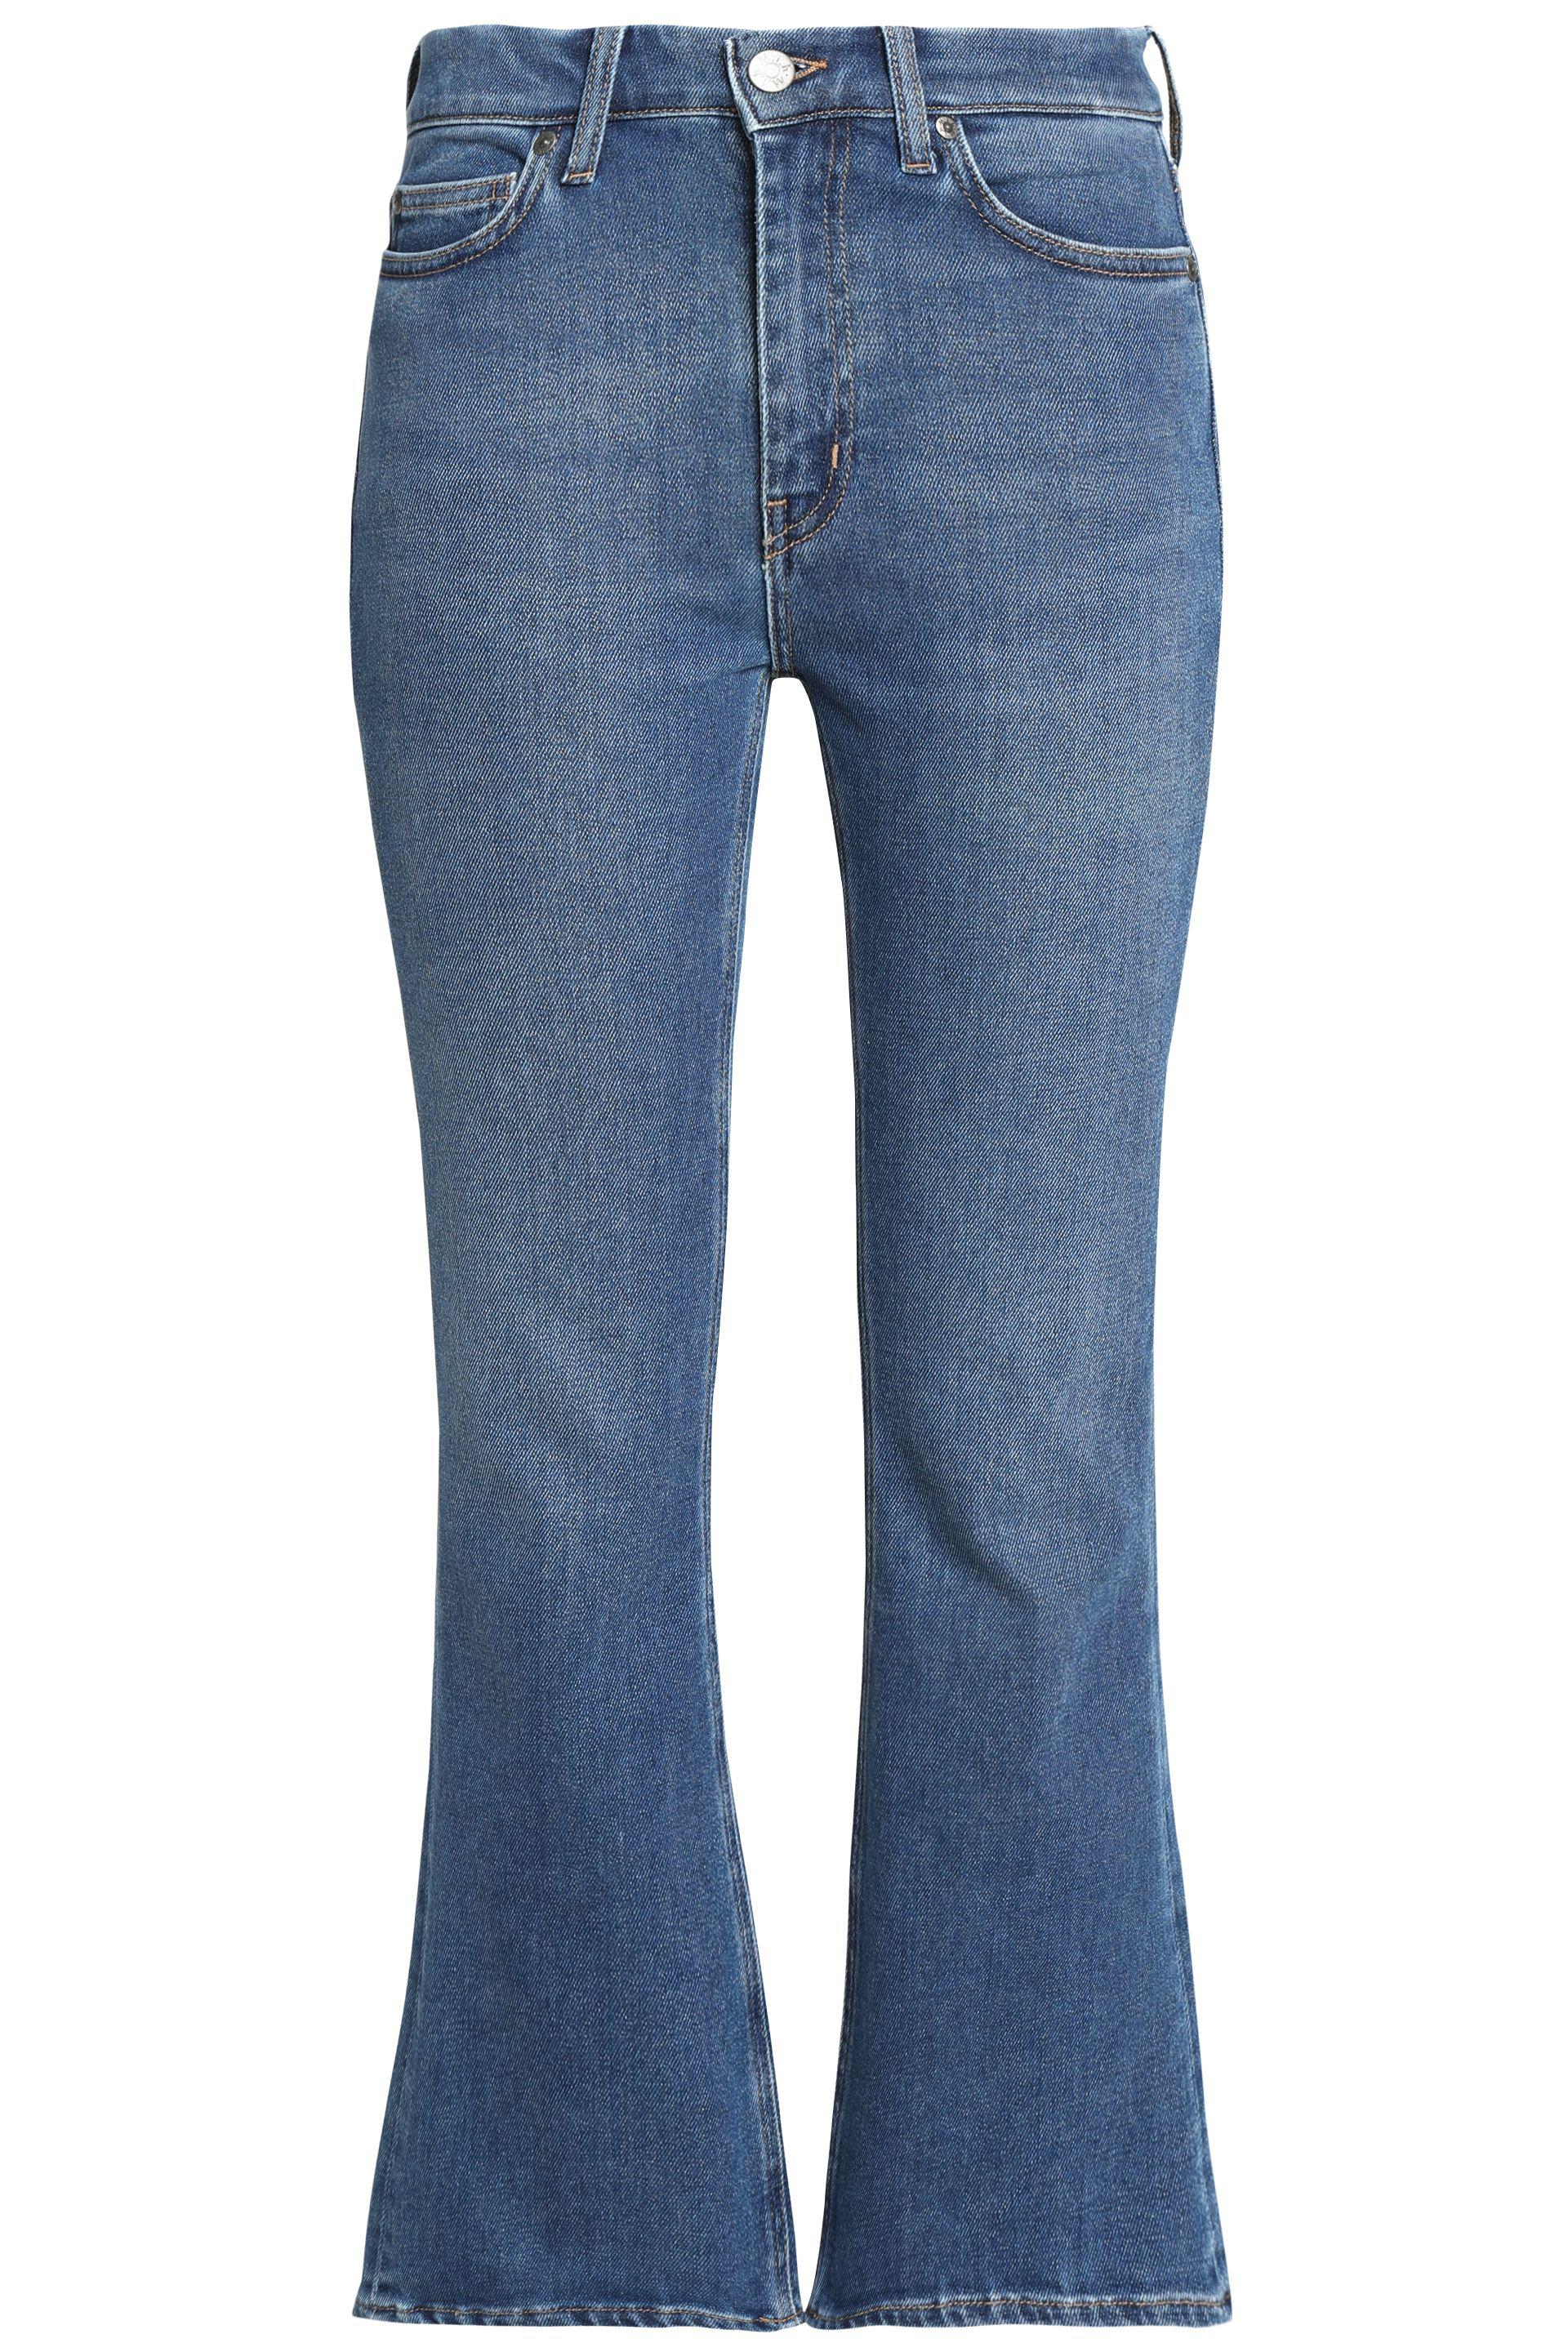 M.i.h Jeans Woman Mid-rise Flared Jeans Mid Denim Size 24 Mih Jeans Fashion Style Perfect Cheap Online Discount How Much Sale Latest Collections 2018 Unisex For Sale XAzkU